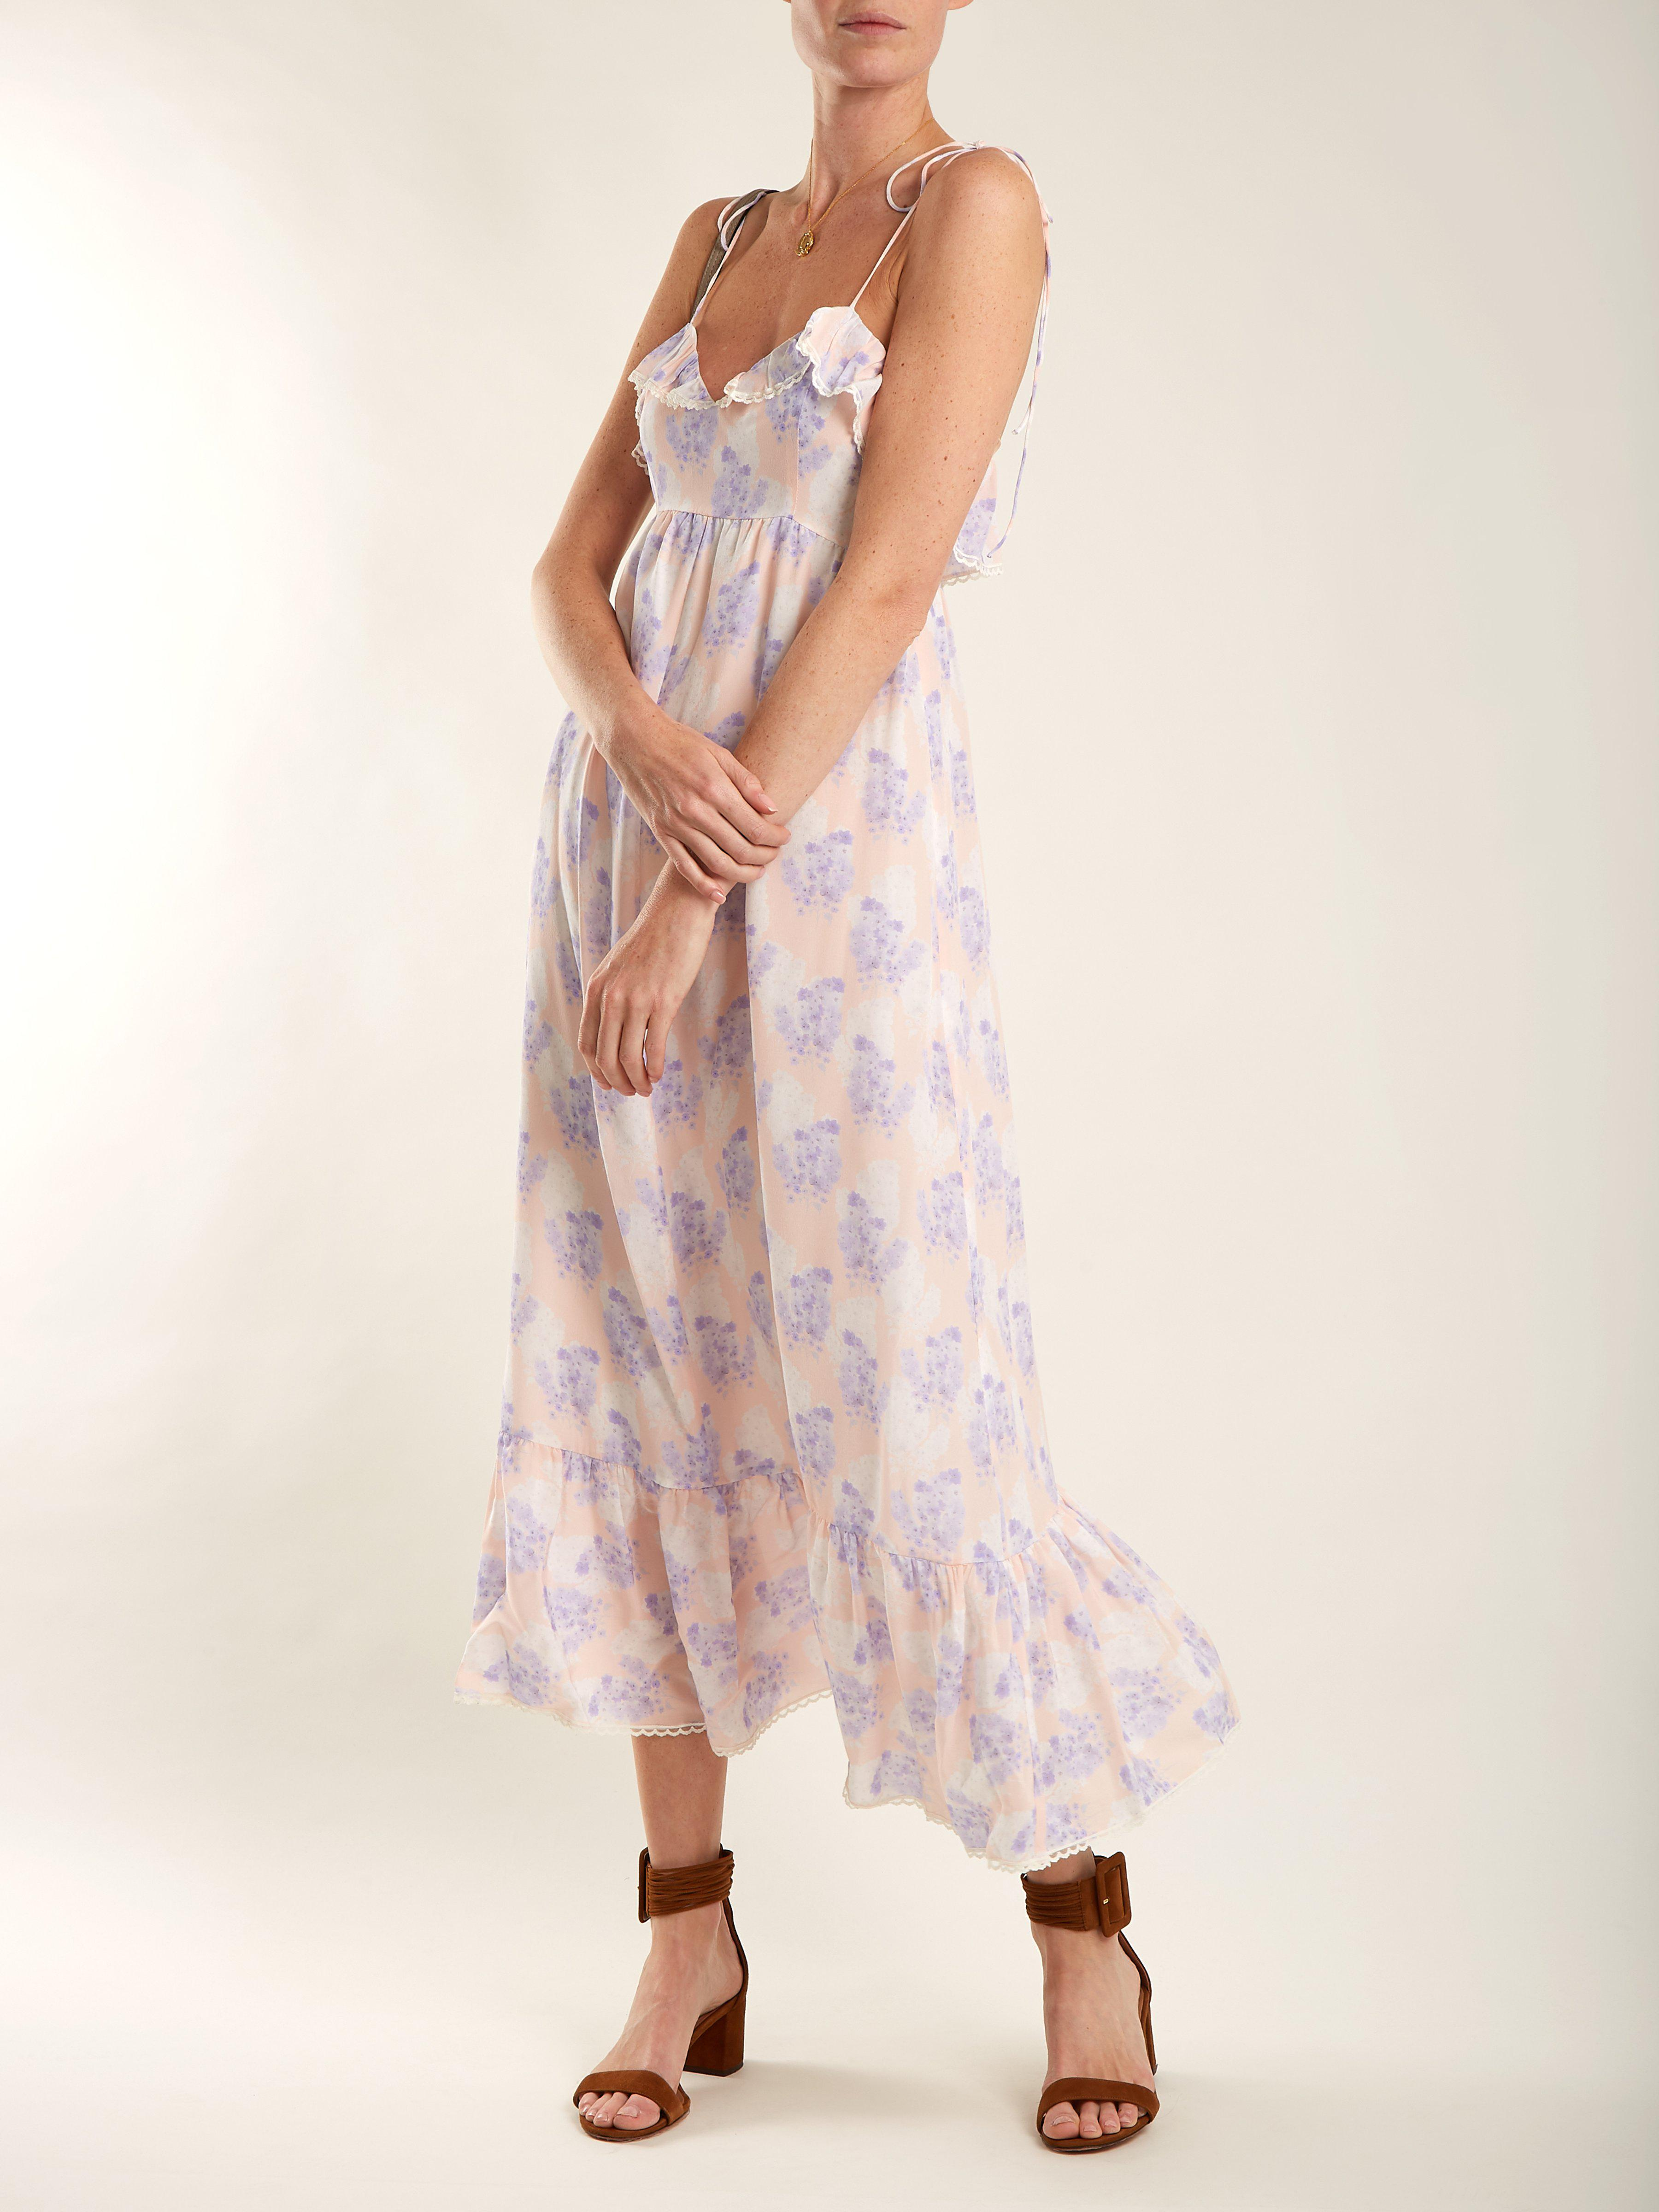 860a3c6e58fddd athena-procopiou-purple-multi-Violets-Whisper-Lace-Trimmed-Maxi-Dress.jpeg